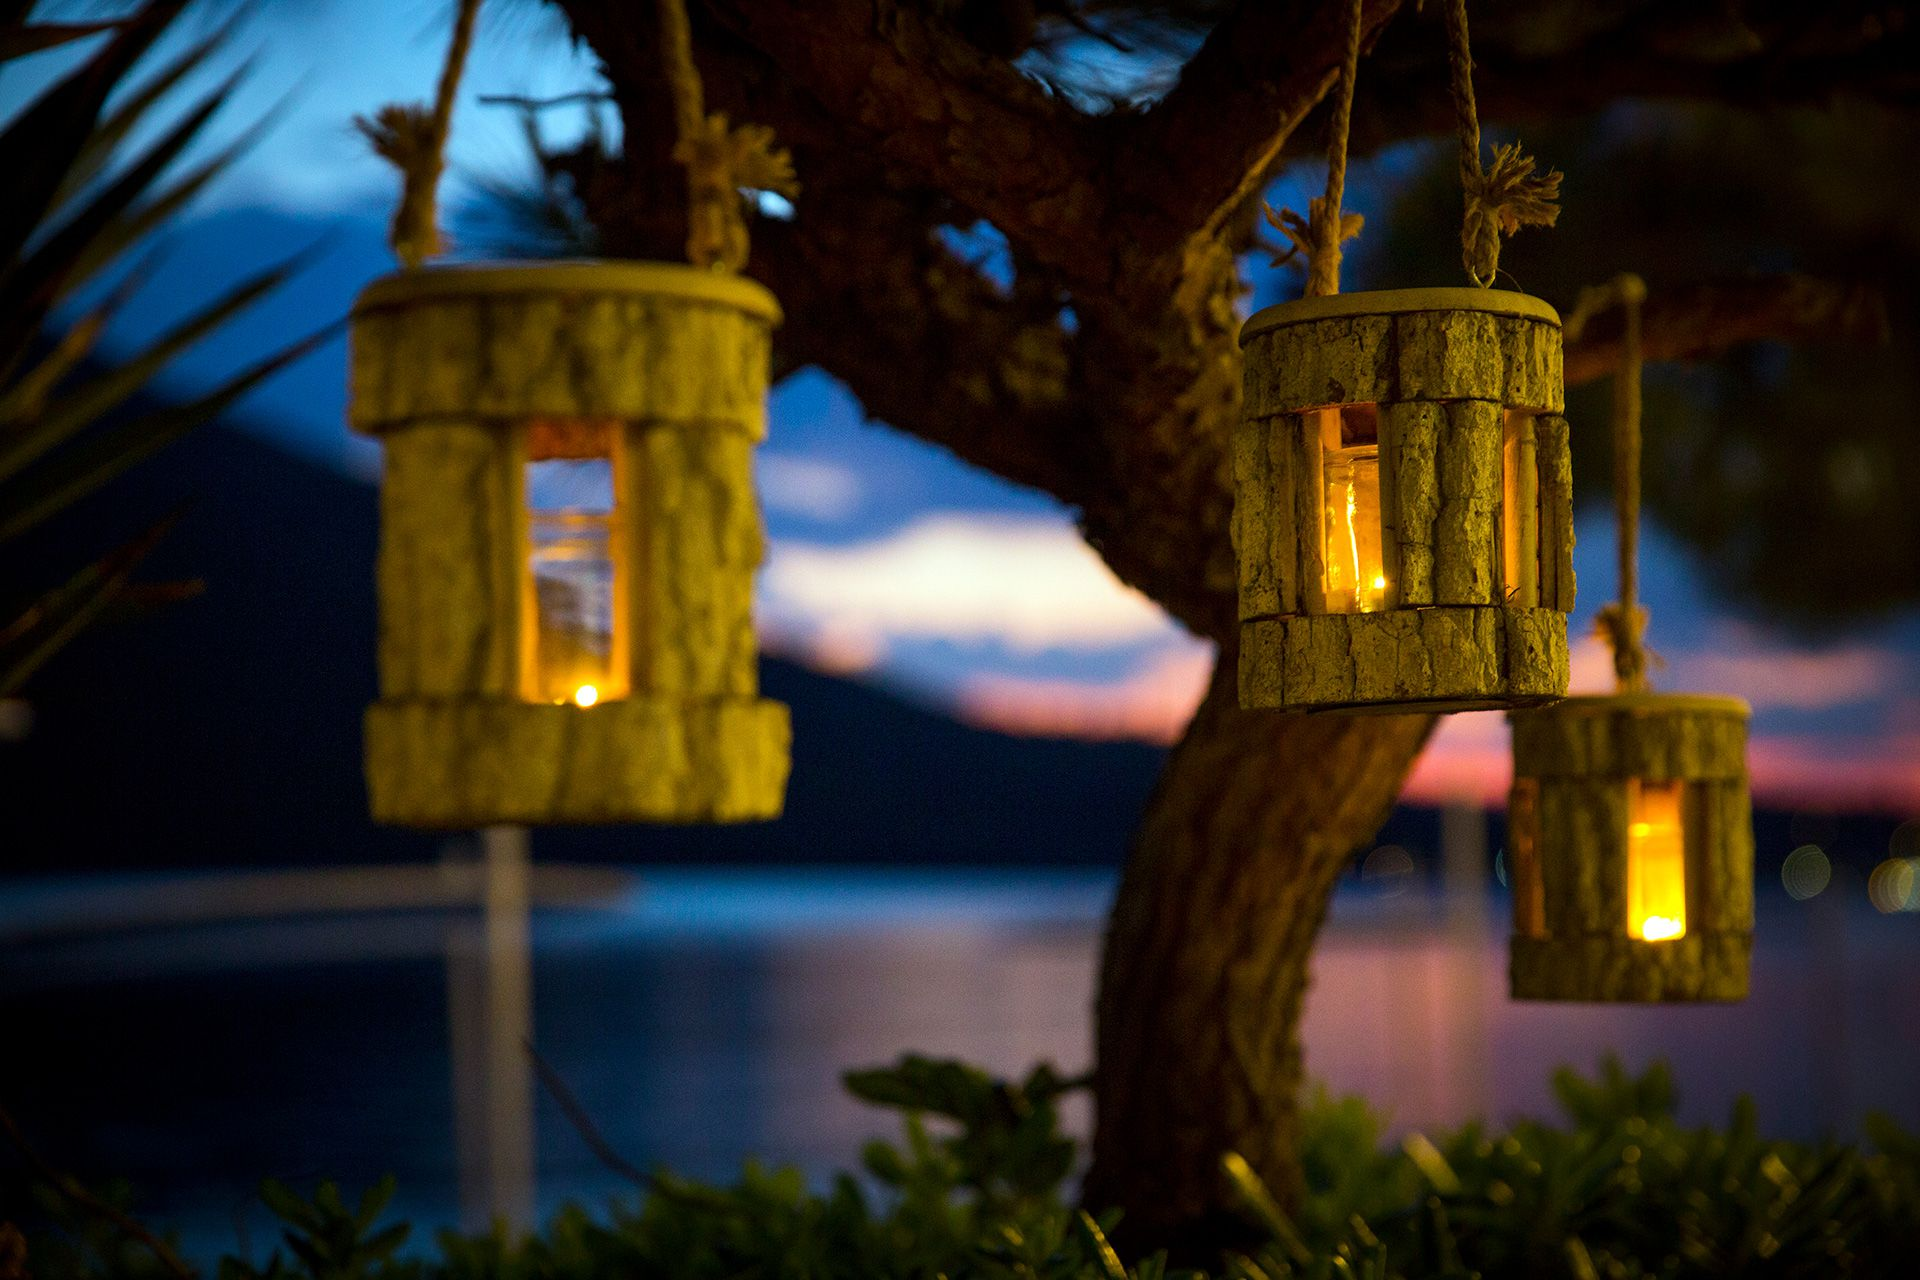 The evening atmosphere and thoughtful decoration of the area make up an enchanting landscape.